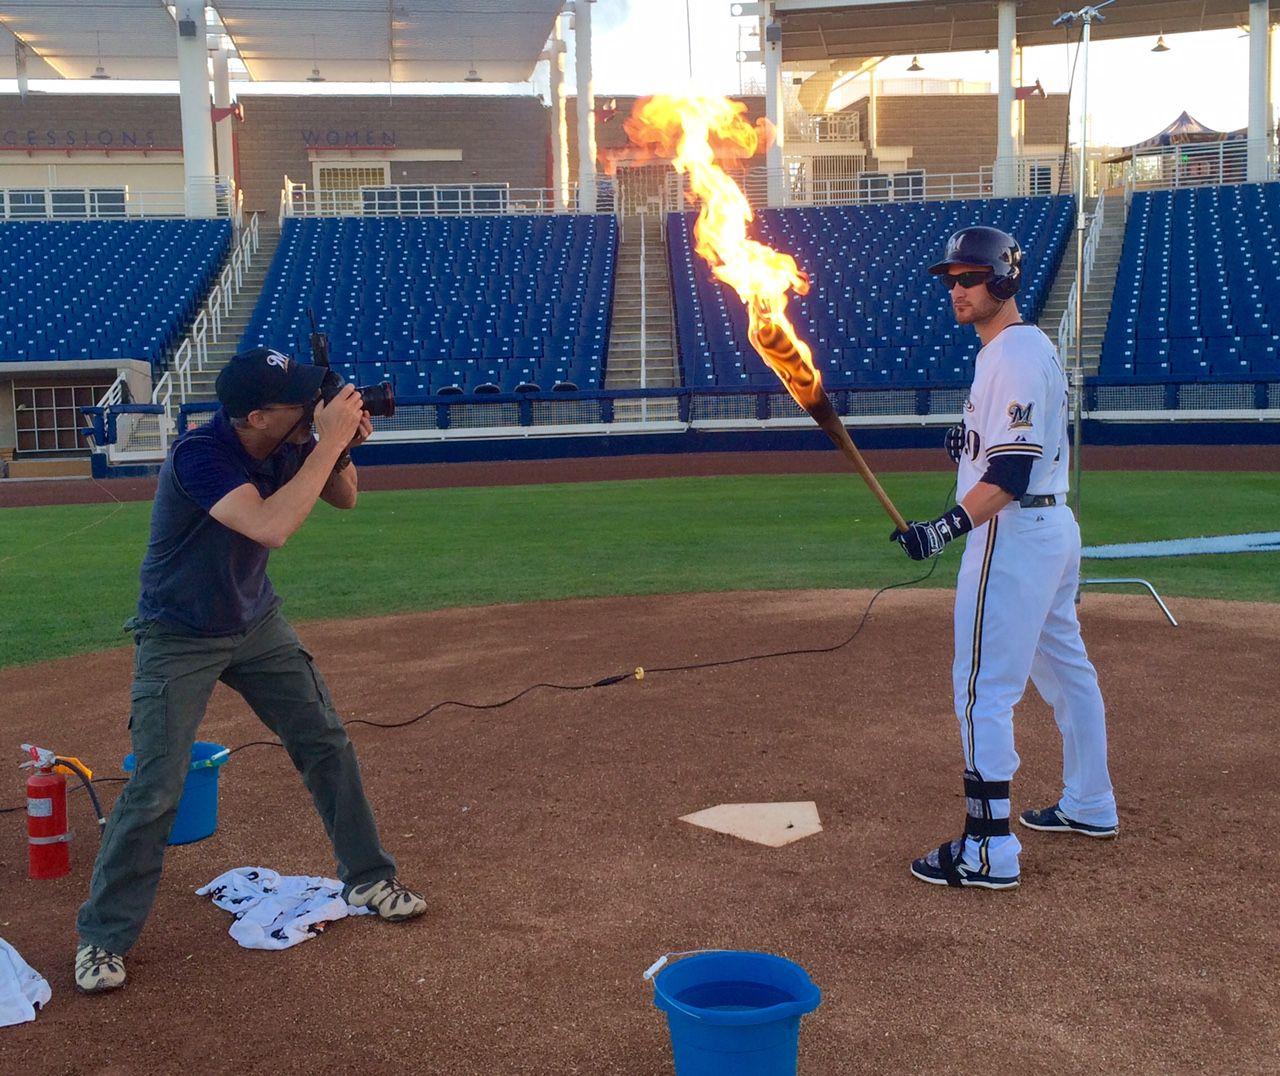 We All Know Jonathan Lucroy Swings A Hot Bat Here The Brewers All Star Participates In A Cool Photo Shoot With P Milwaukee Brewers Brewers Baseball Brewers